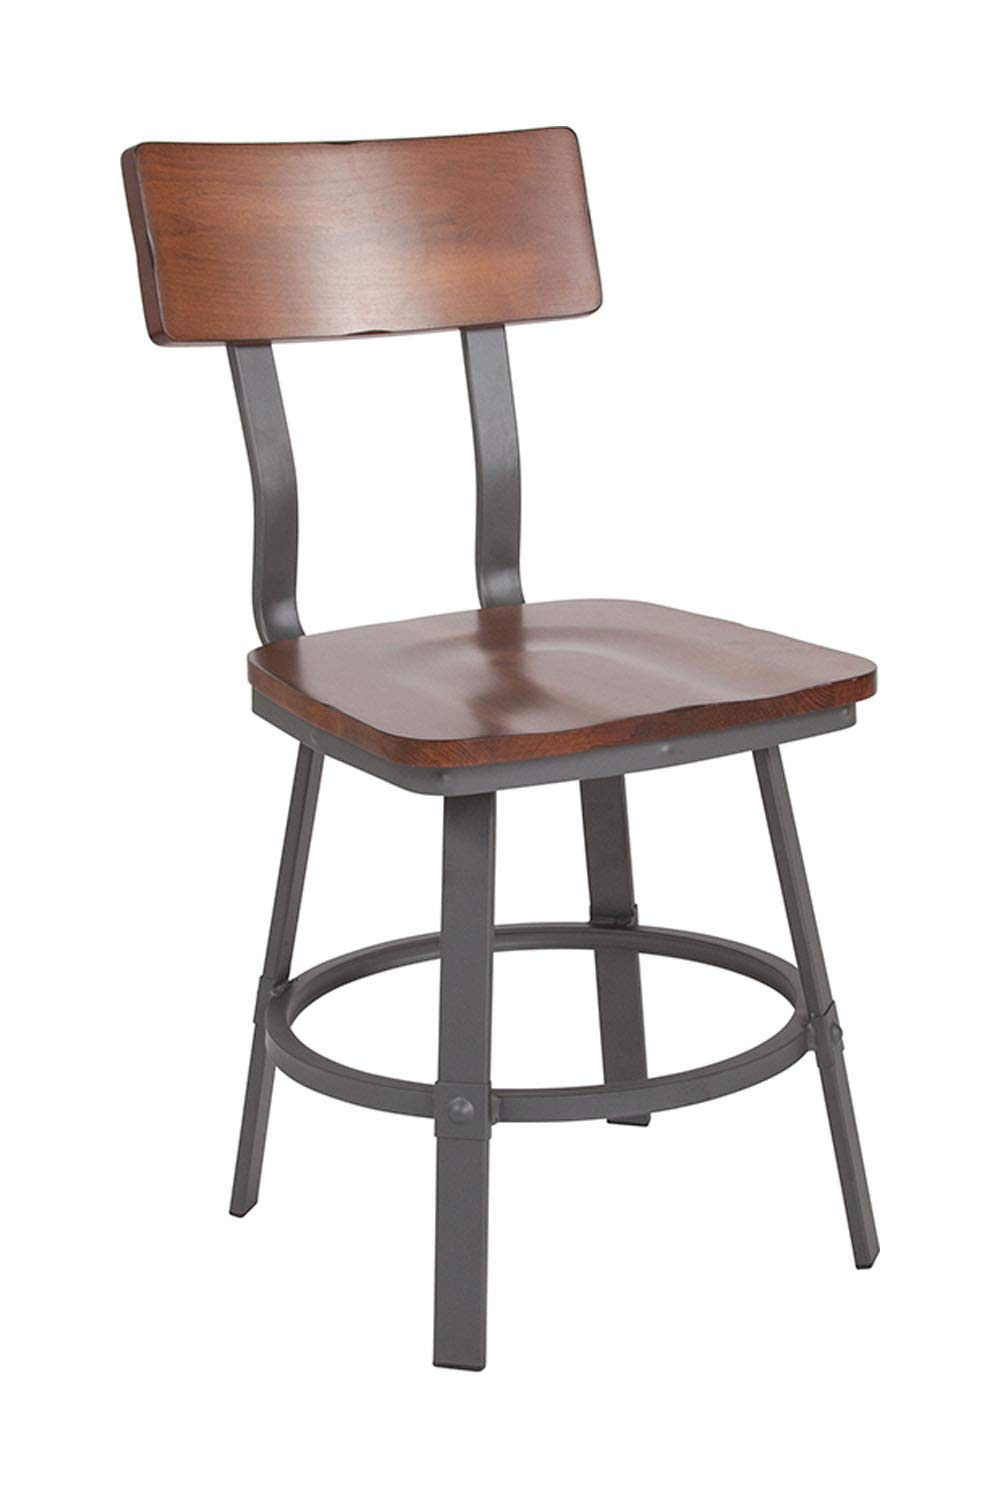 Offex Rustic Walnut Restaurant Chair with Wood Seat and Back